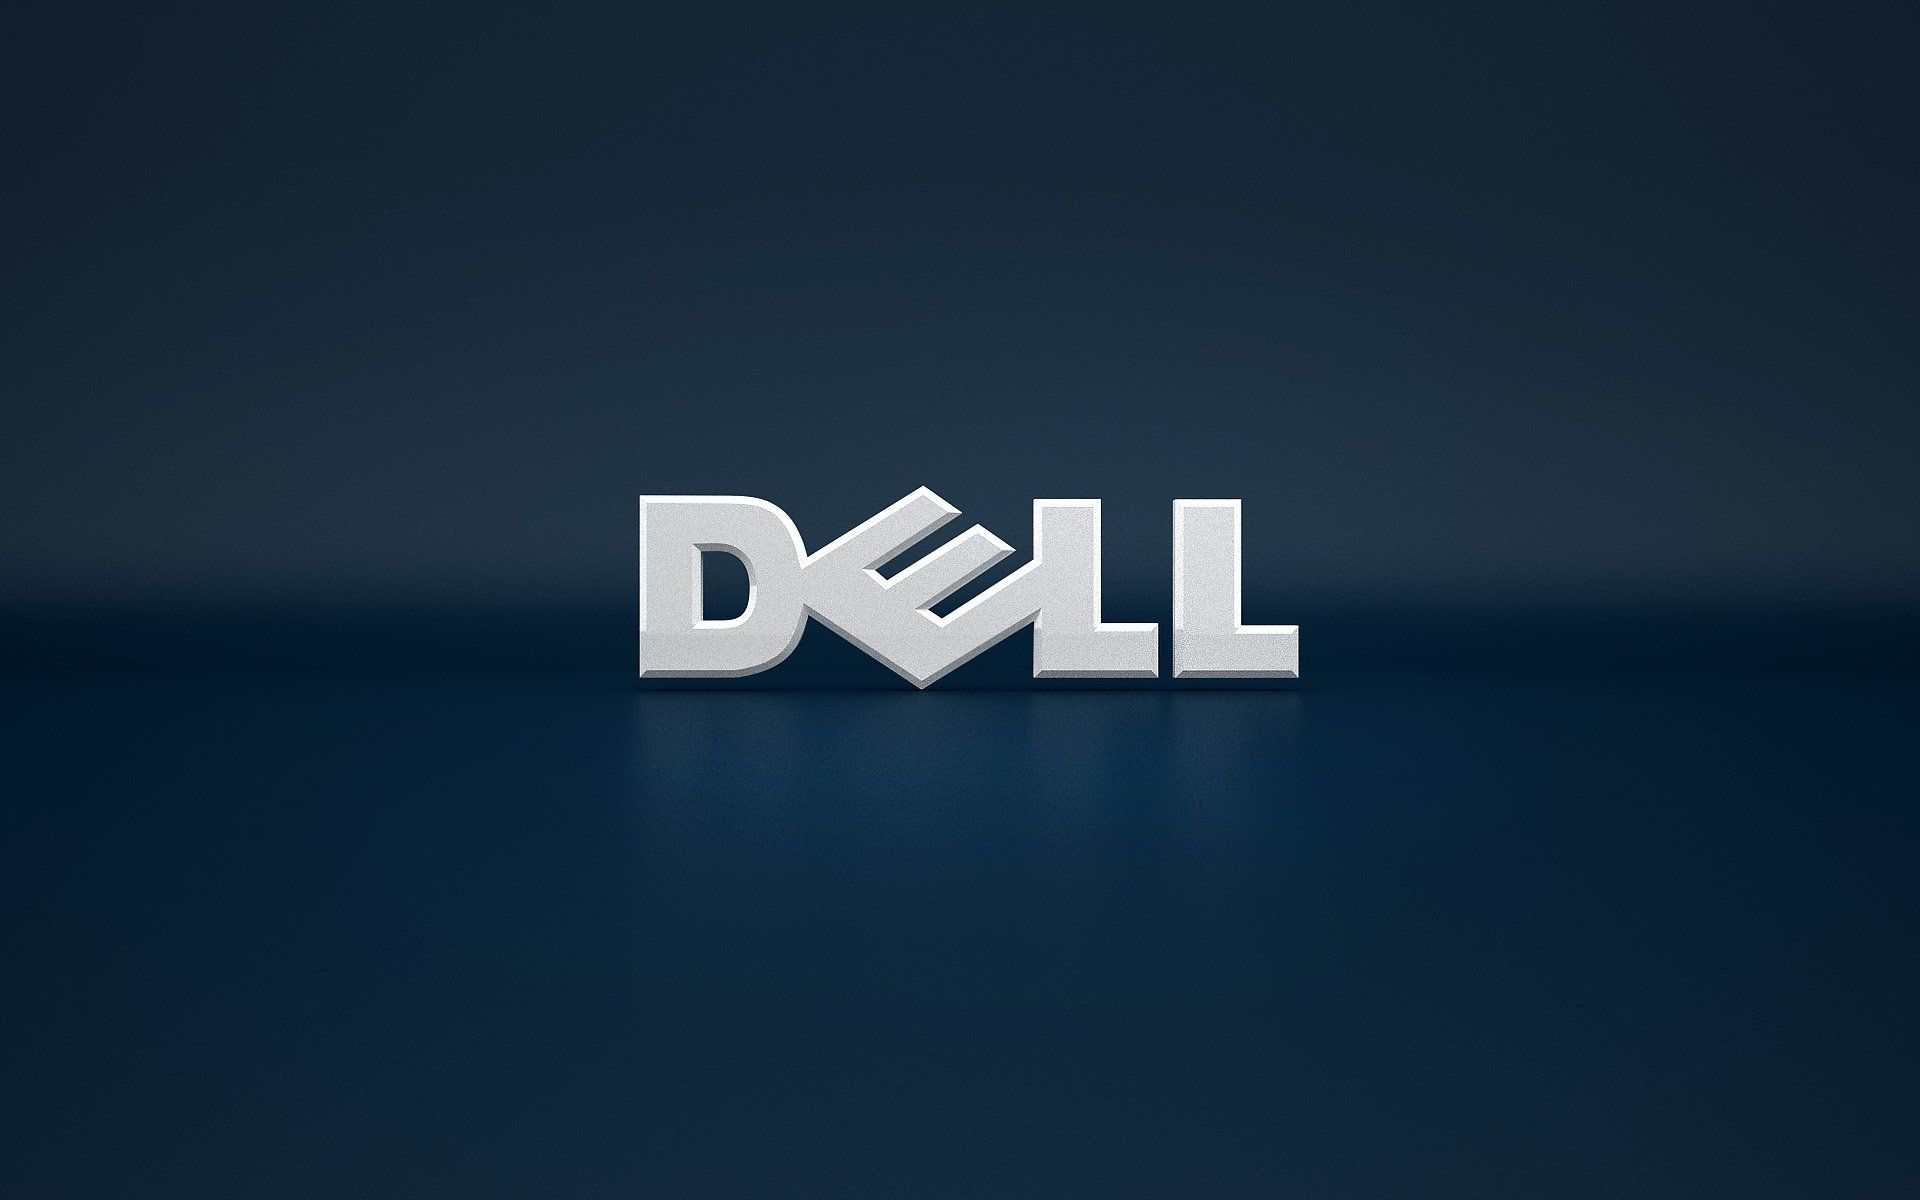 Processor phenom amd wallpaper animated background computers picture - Dell Logo On Blue Background Hd Wallpaper